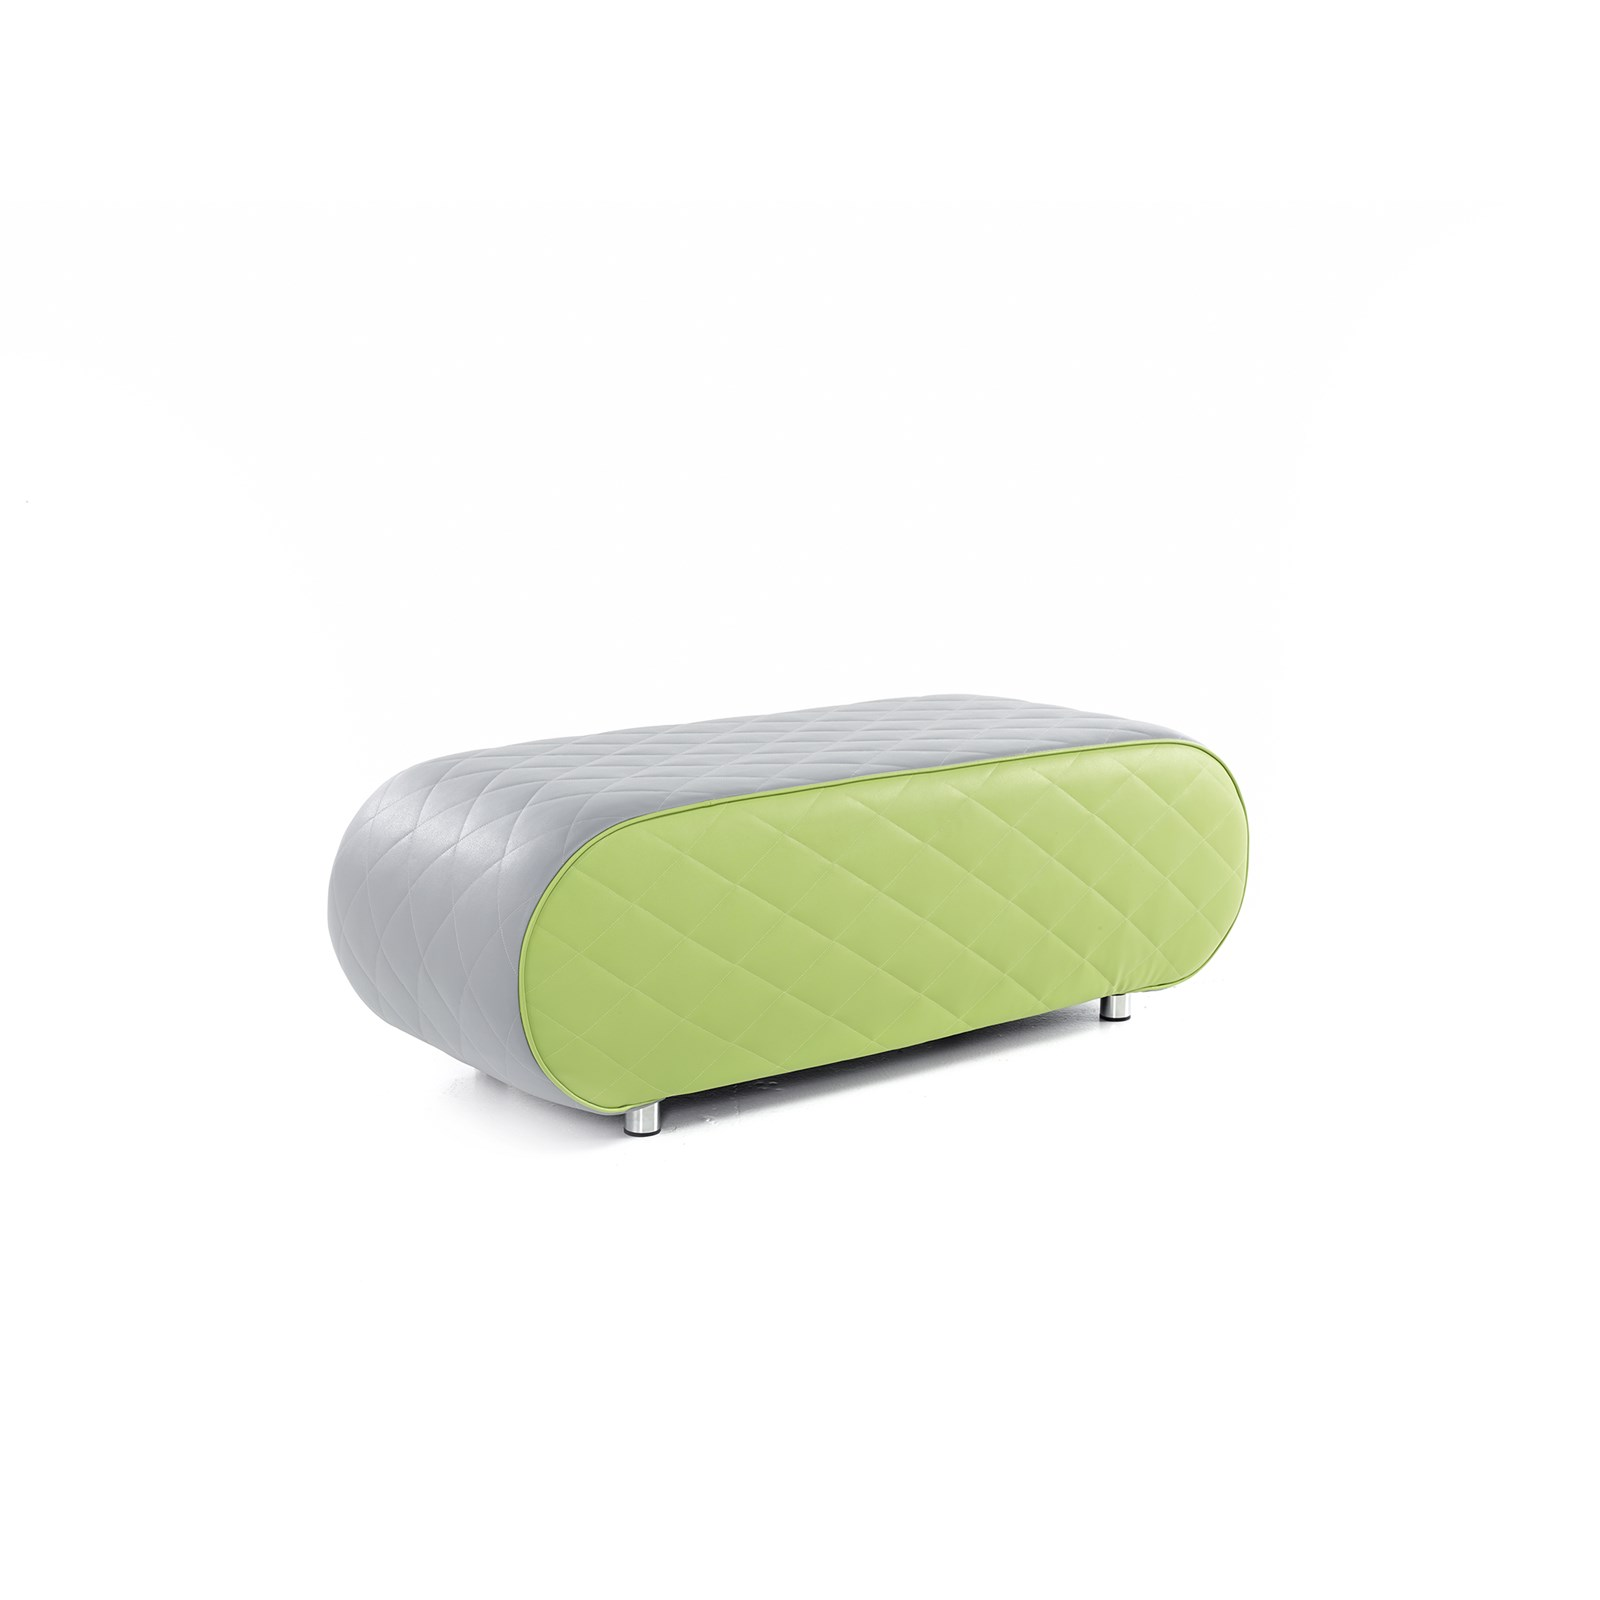 Large Ellipse - Grey and Lime